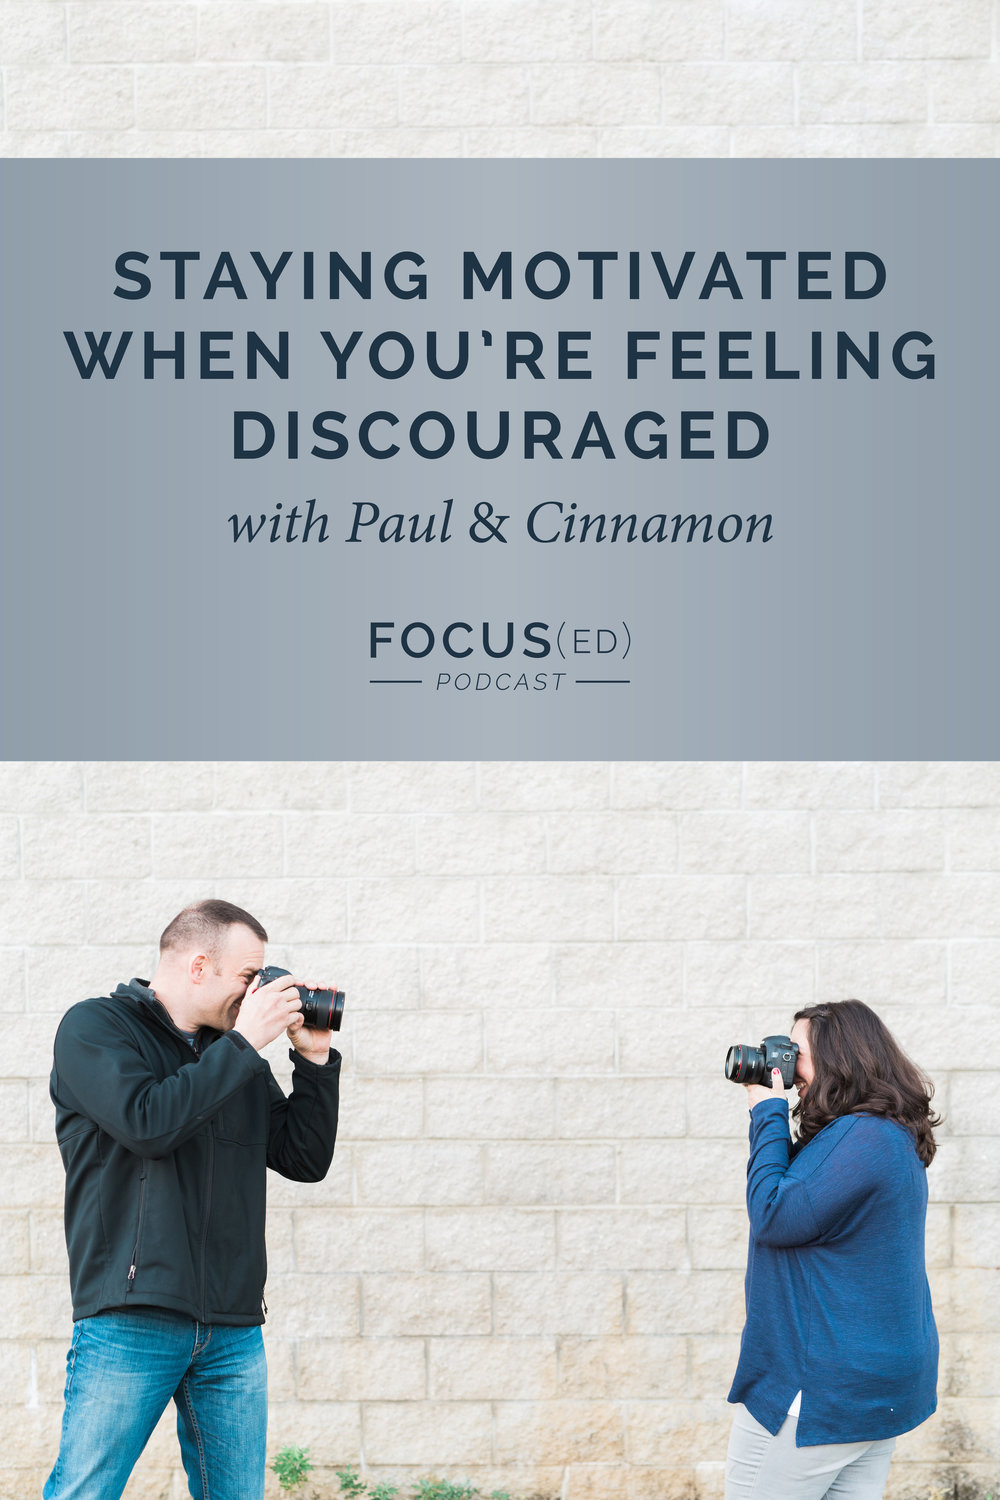 Staying Motivated-Focused Podcast_vertical.jpg